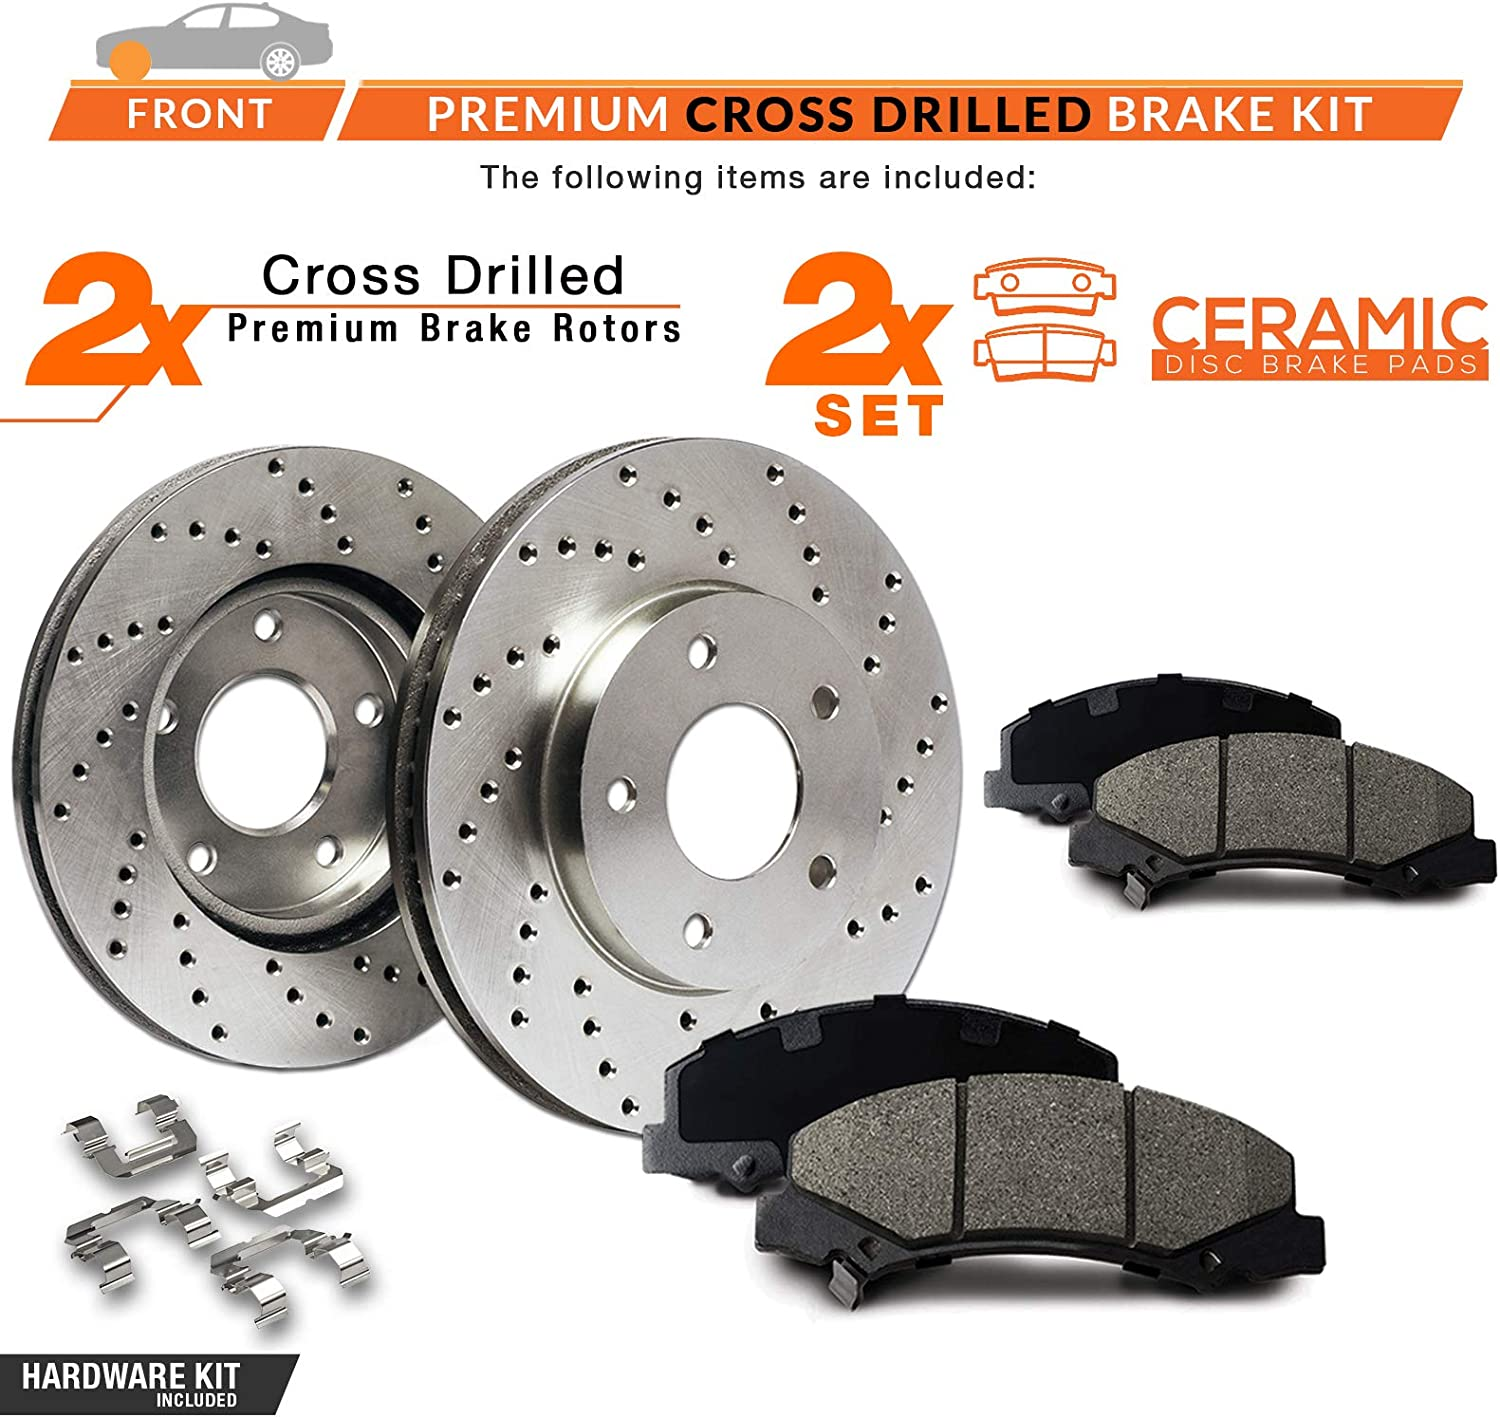 Max Brakes Premium XD Rotors with Carbon Ceramic Pads and Hardware Kit KH060821 Front